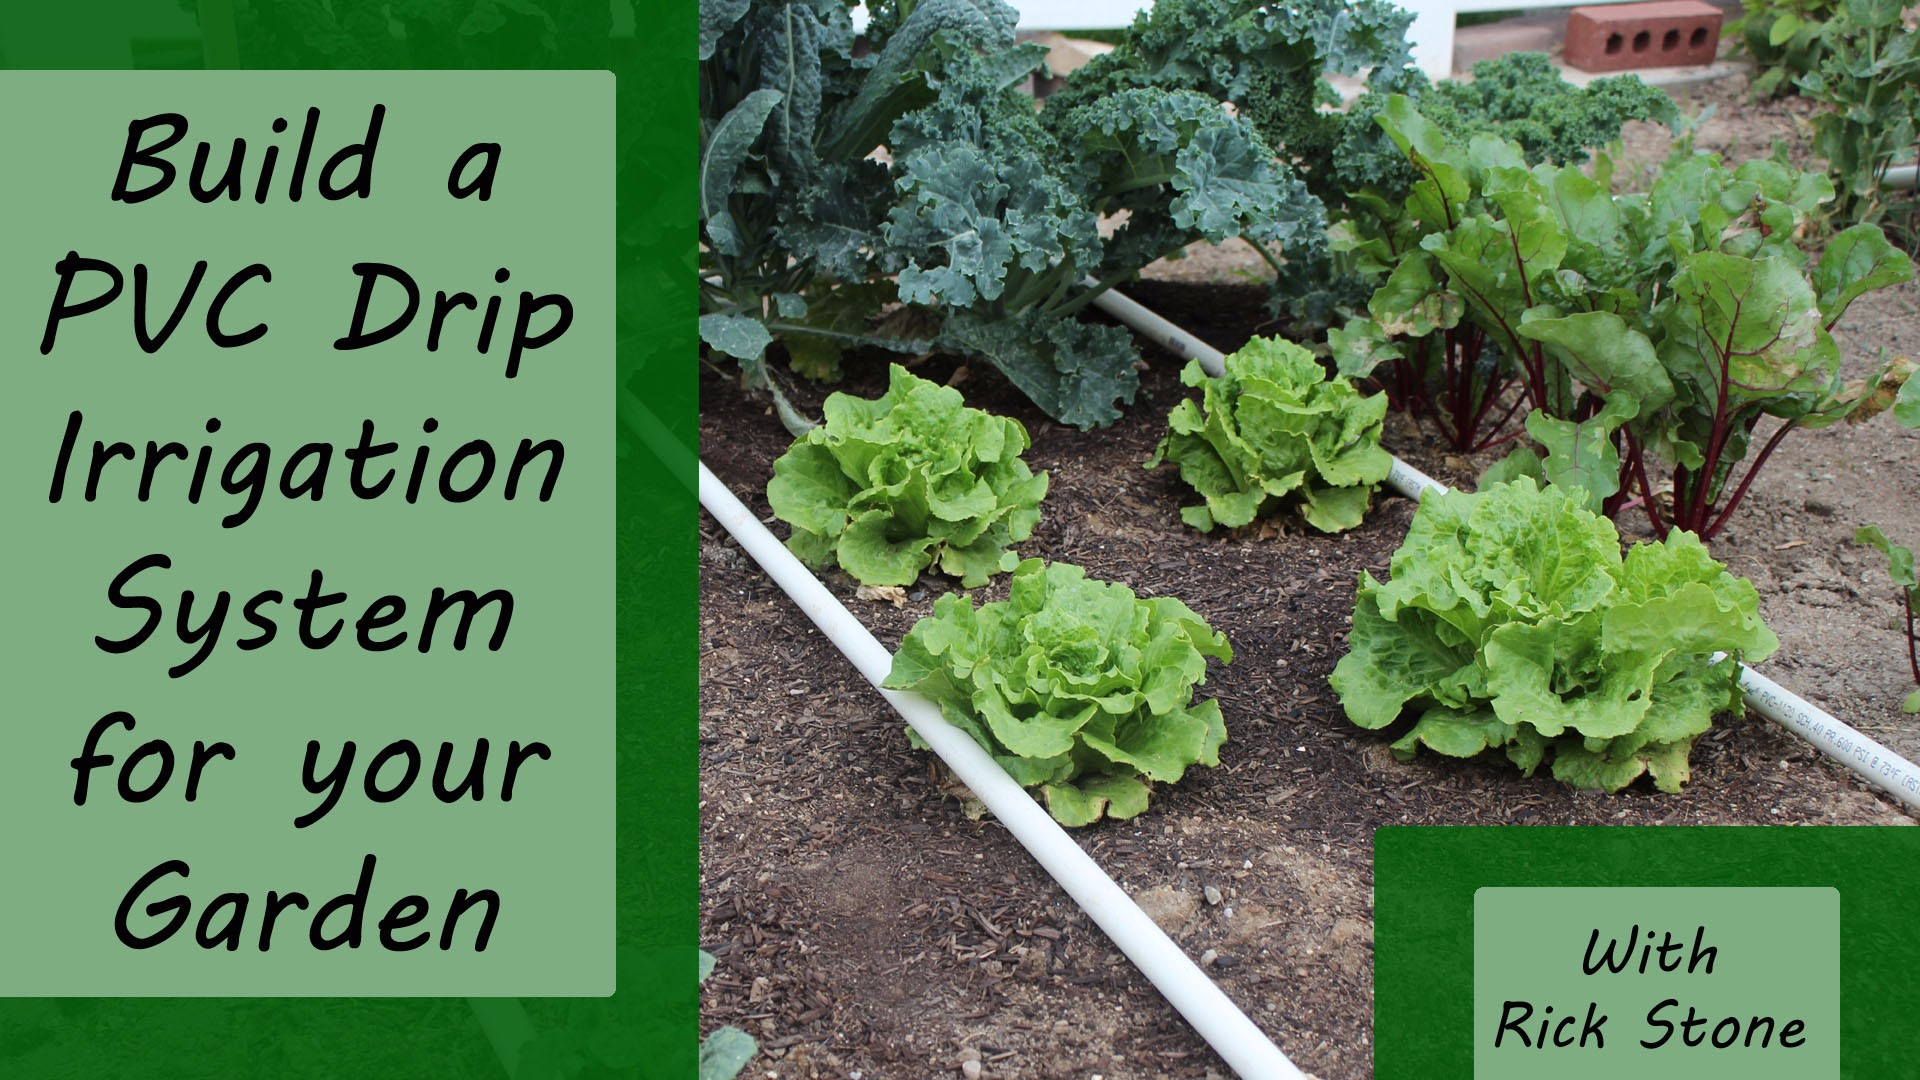 Build A Pvc Drip Irrigation System For Your Garden